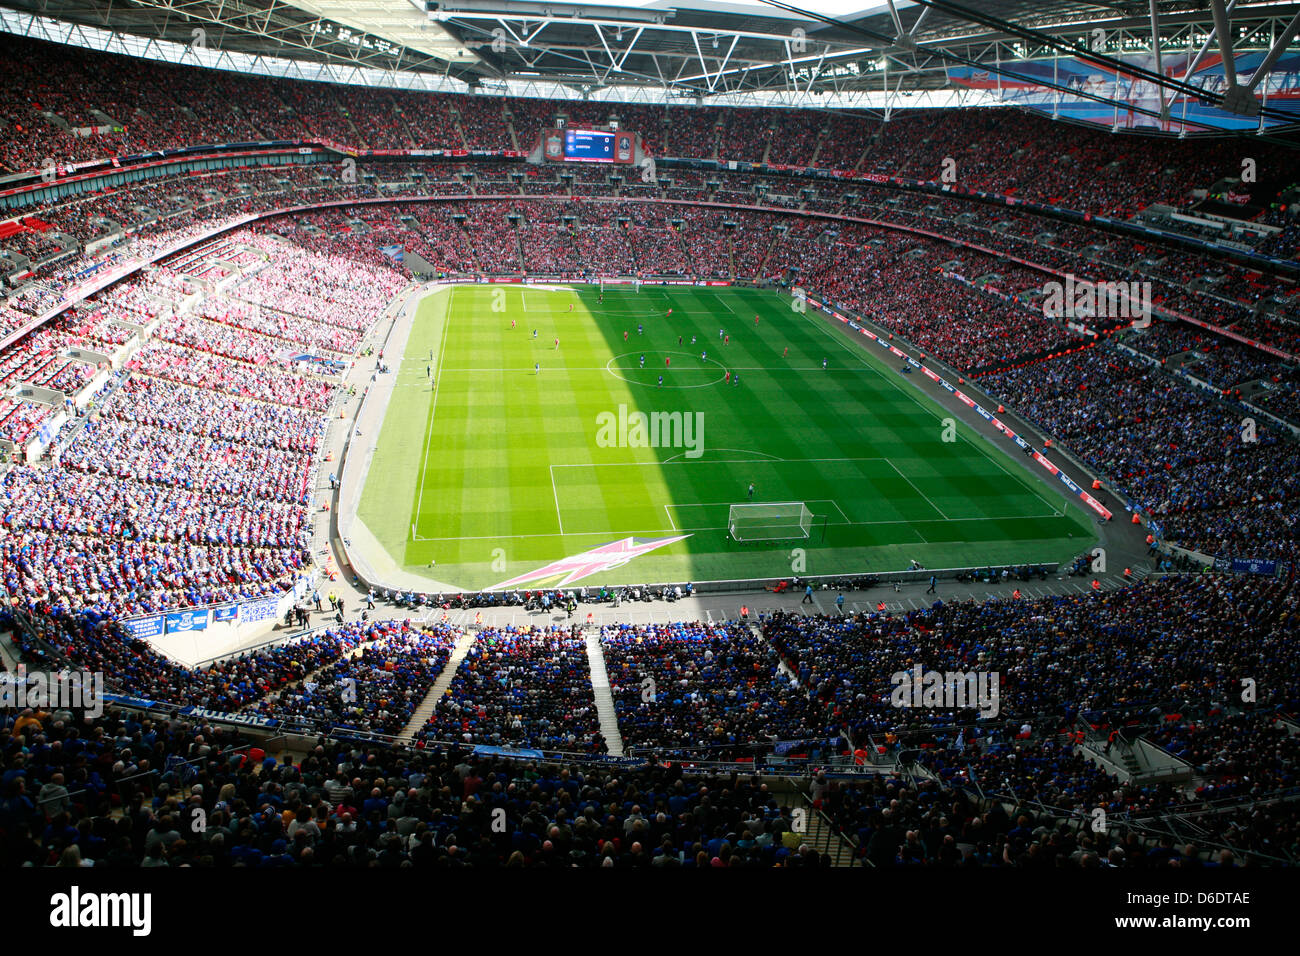 Wembley Stadium during a football soccer match between Liverpool and Everton - Stock Image